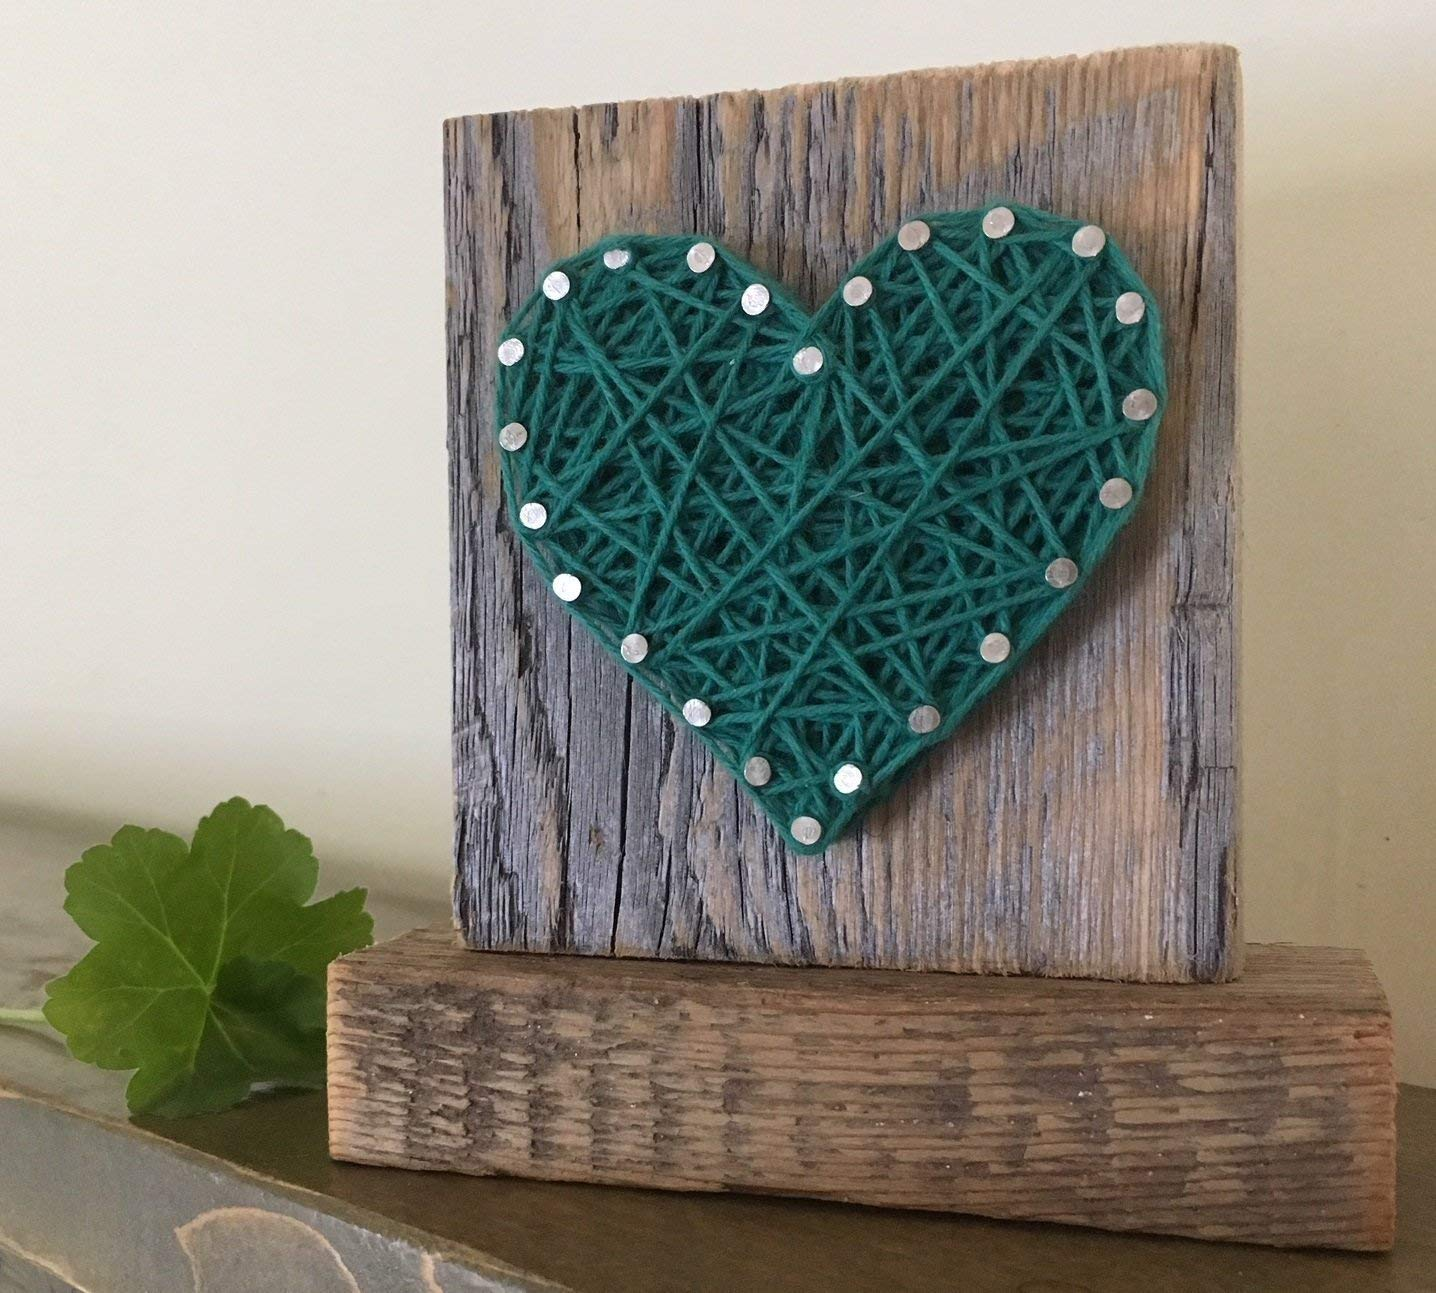 Sweet & small freestanding wooden green string art heart sign. Perfect for home accents, Wedding favors, Anniversary gifts, St. Patrick's Day, Christmas, nursery decoration and just because gifts.